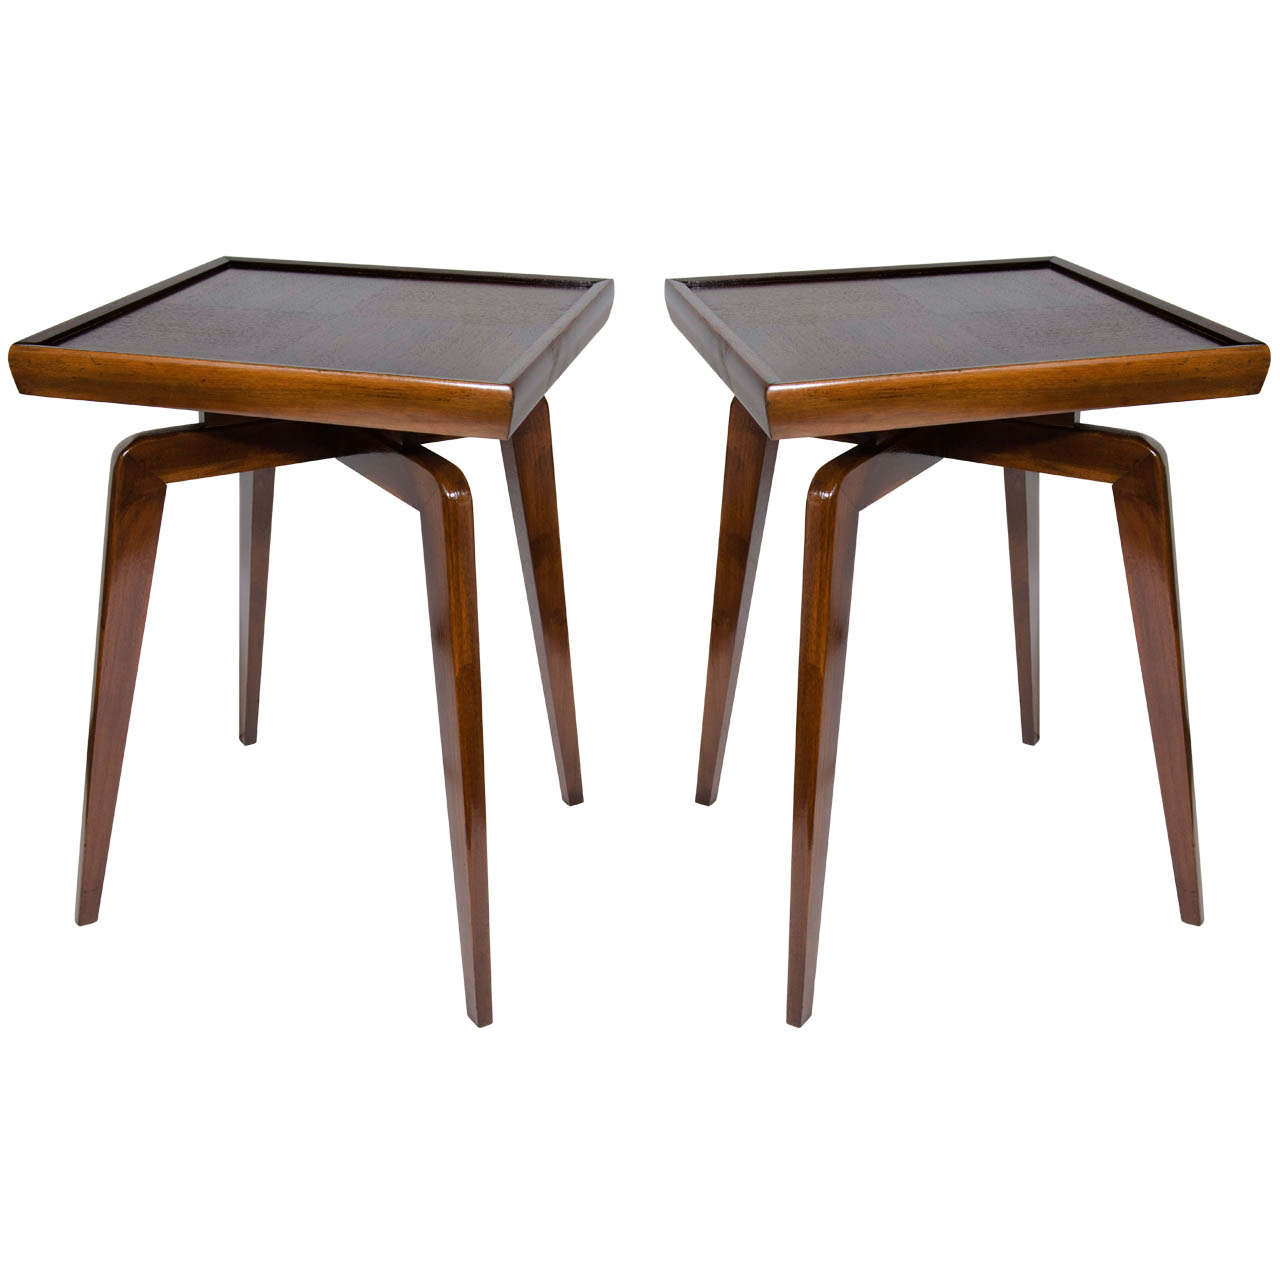 Home > Furniture > Tables > Side Tables